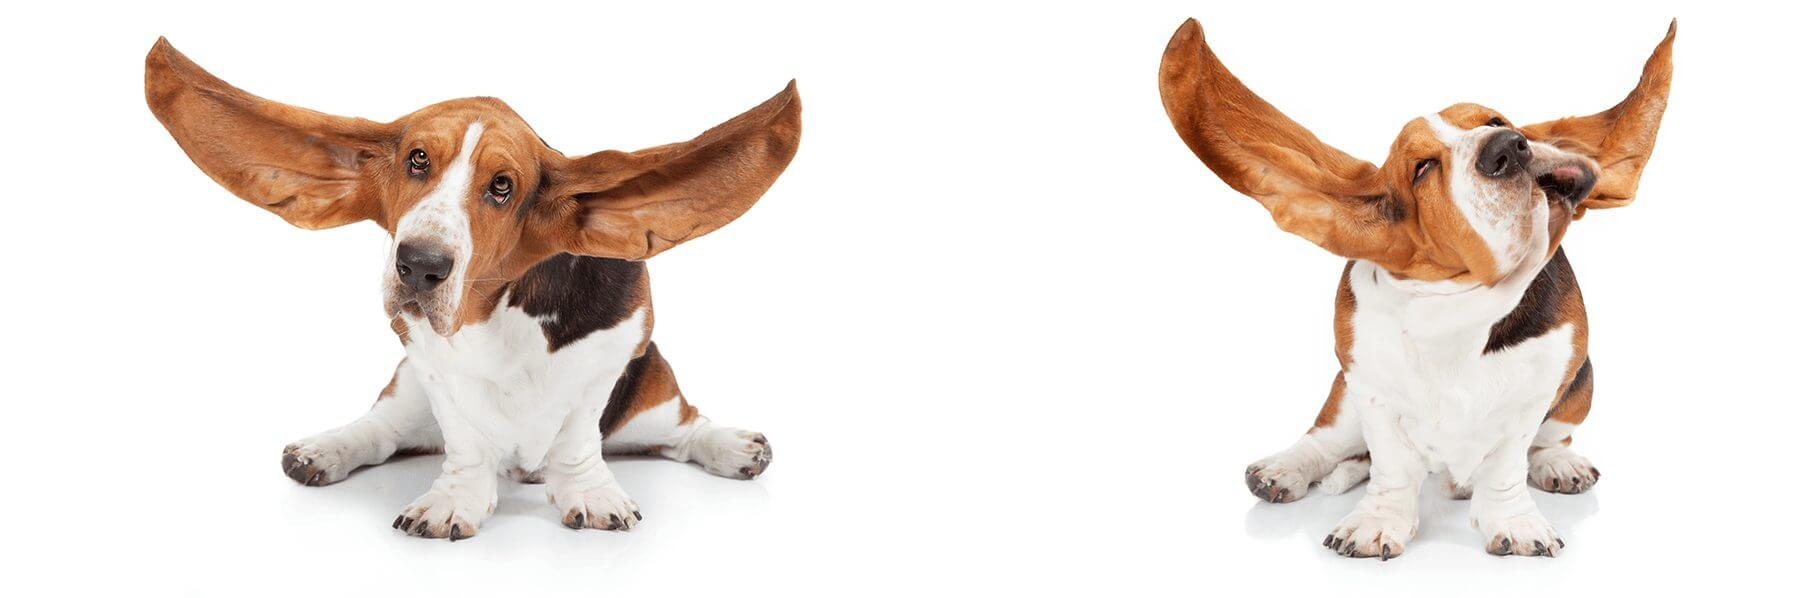 bassethound_fotostudio3